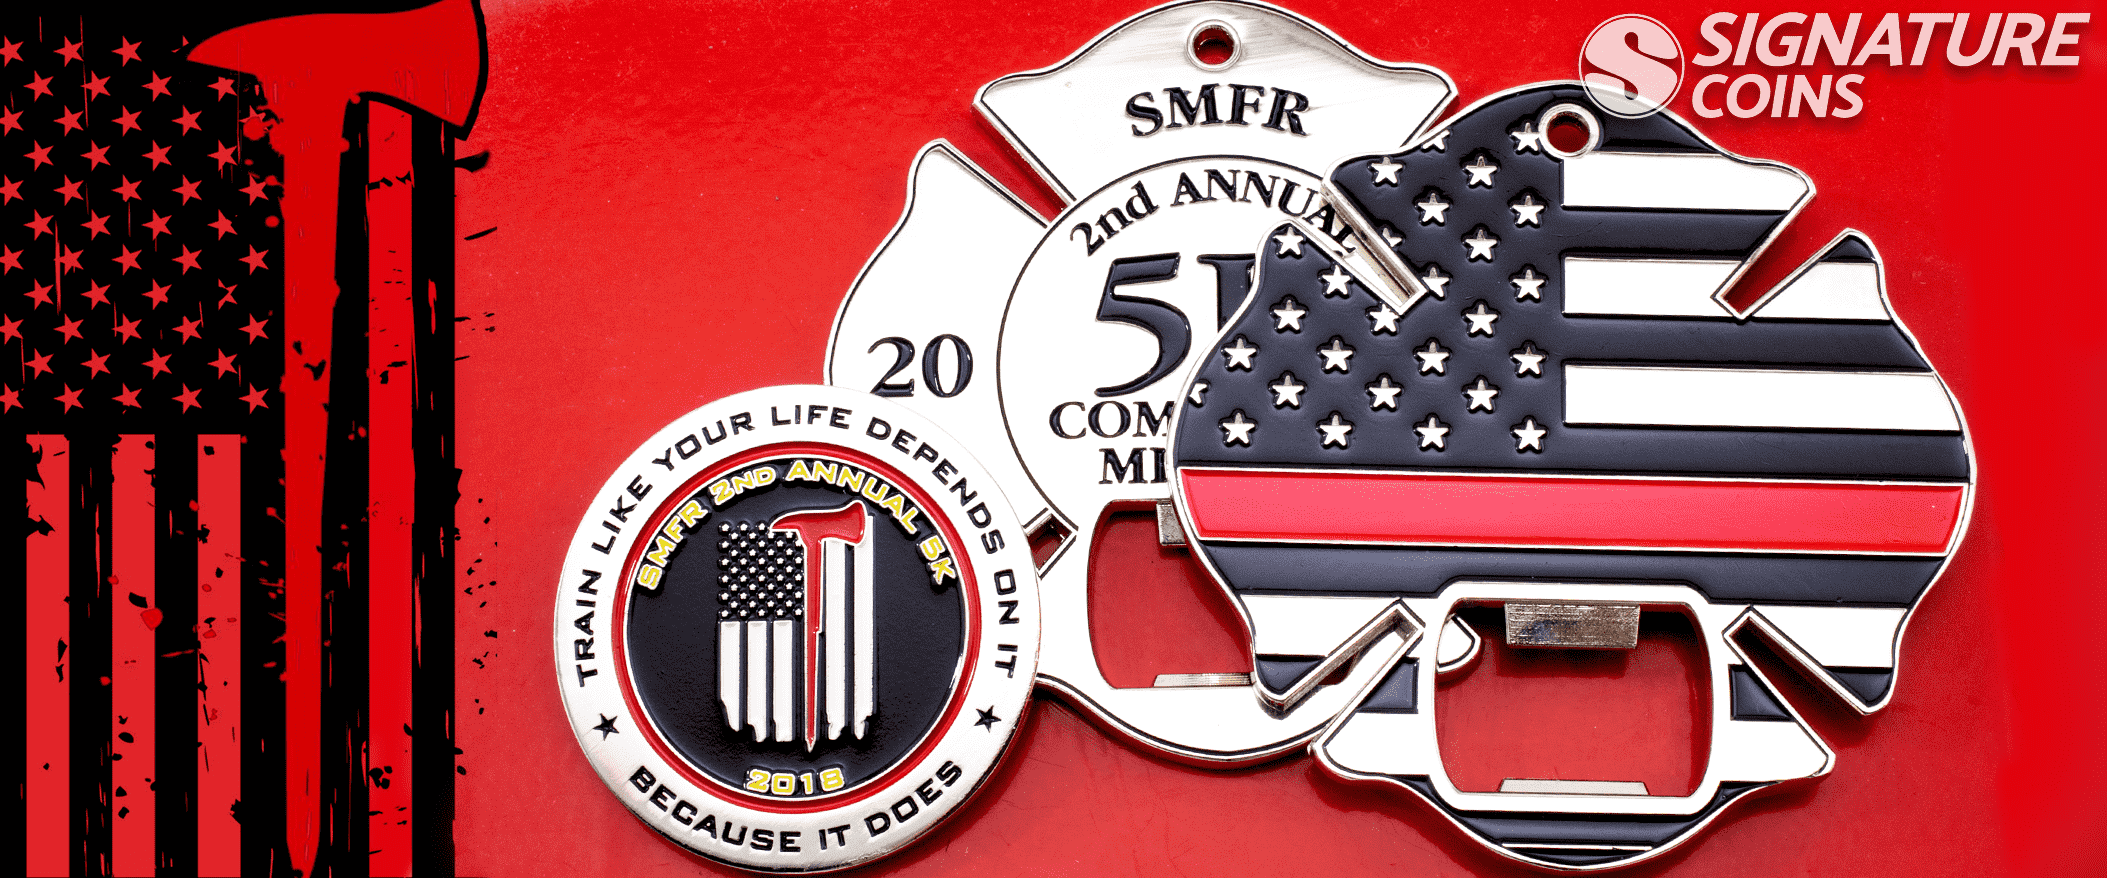 Thin red line firefighter challenge coin by signature coins